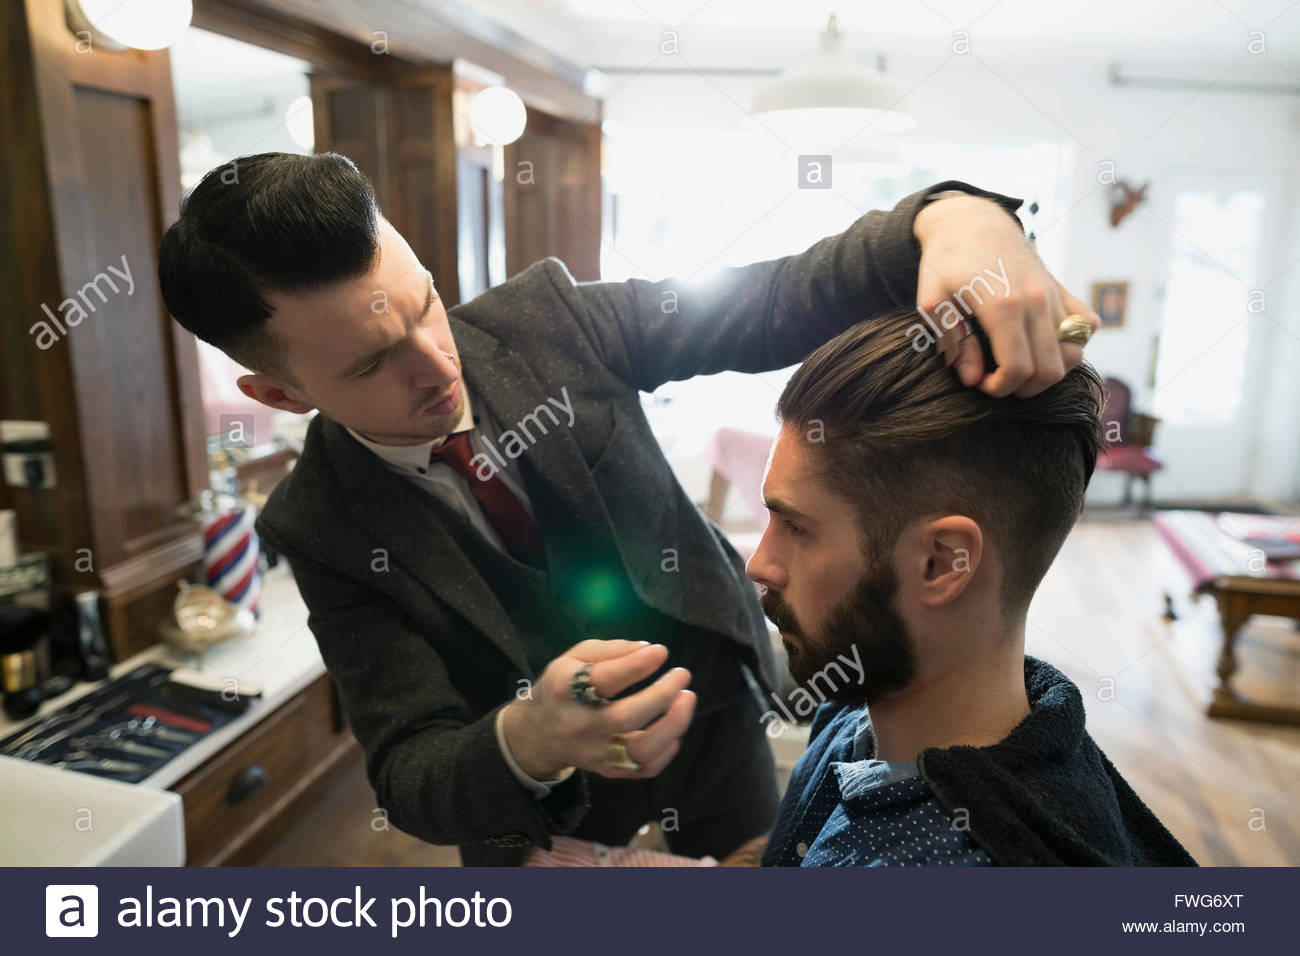 Barber styling man - Stock Image